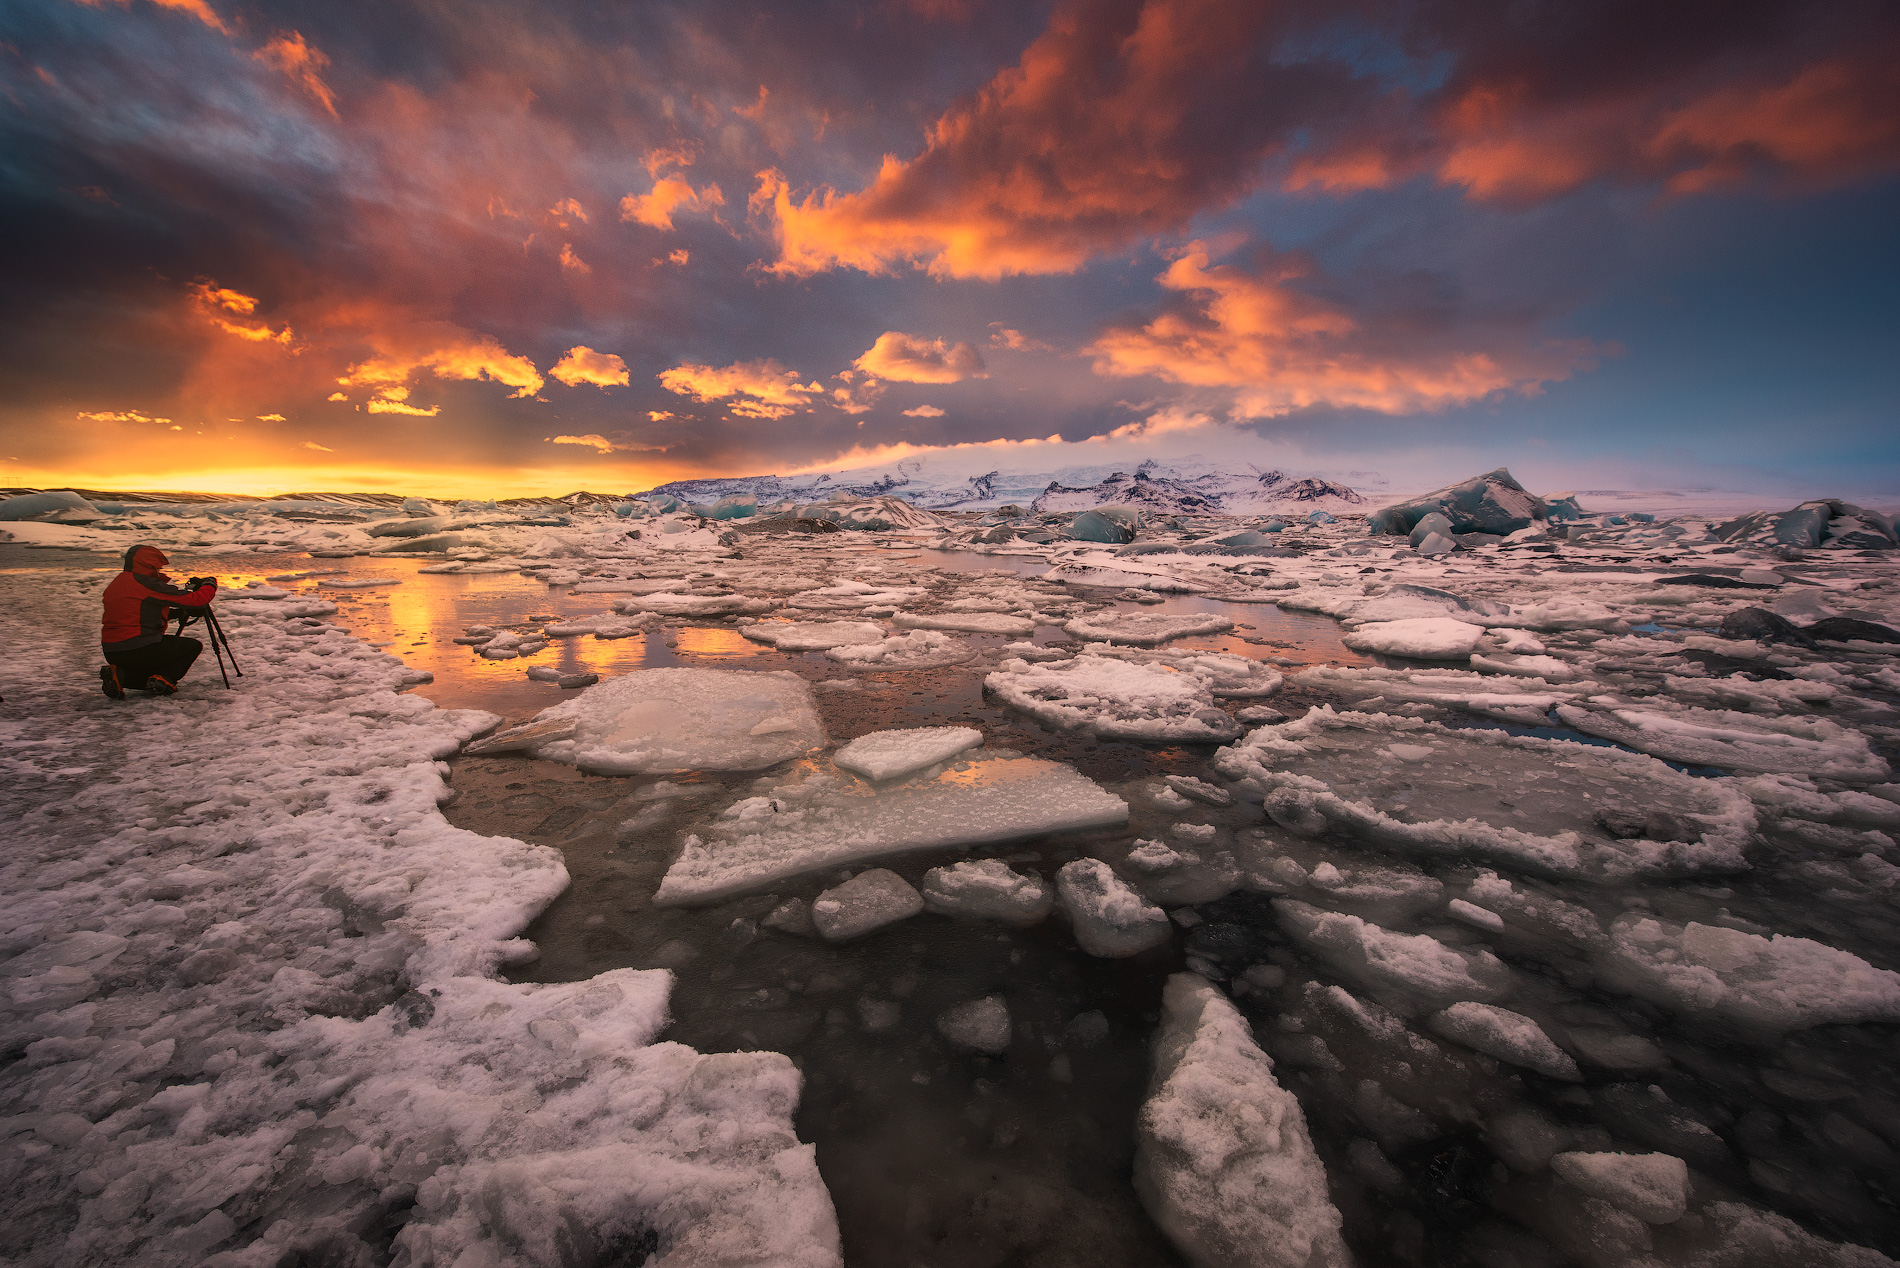 It's possible to spend several days taking pictures at Jökulsárlón glacier lagoon and no shot will be the same.